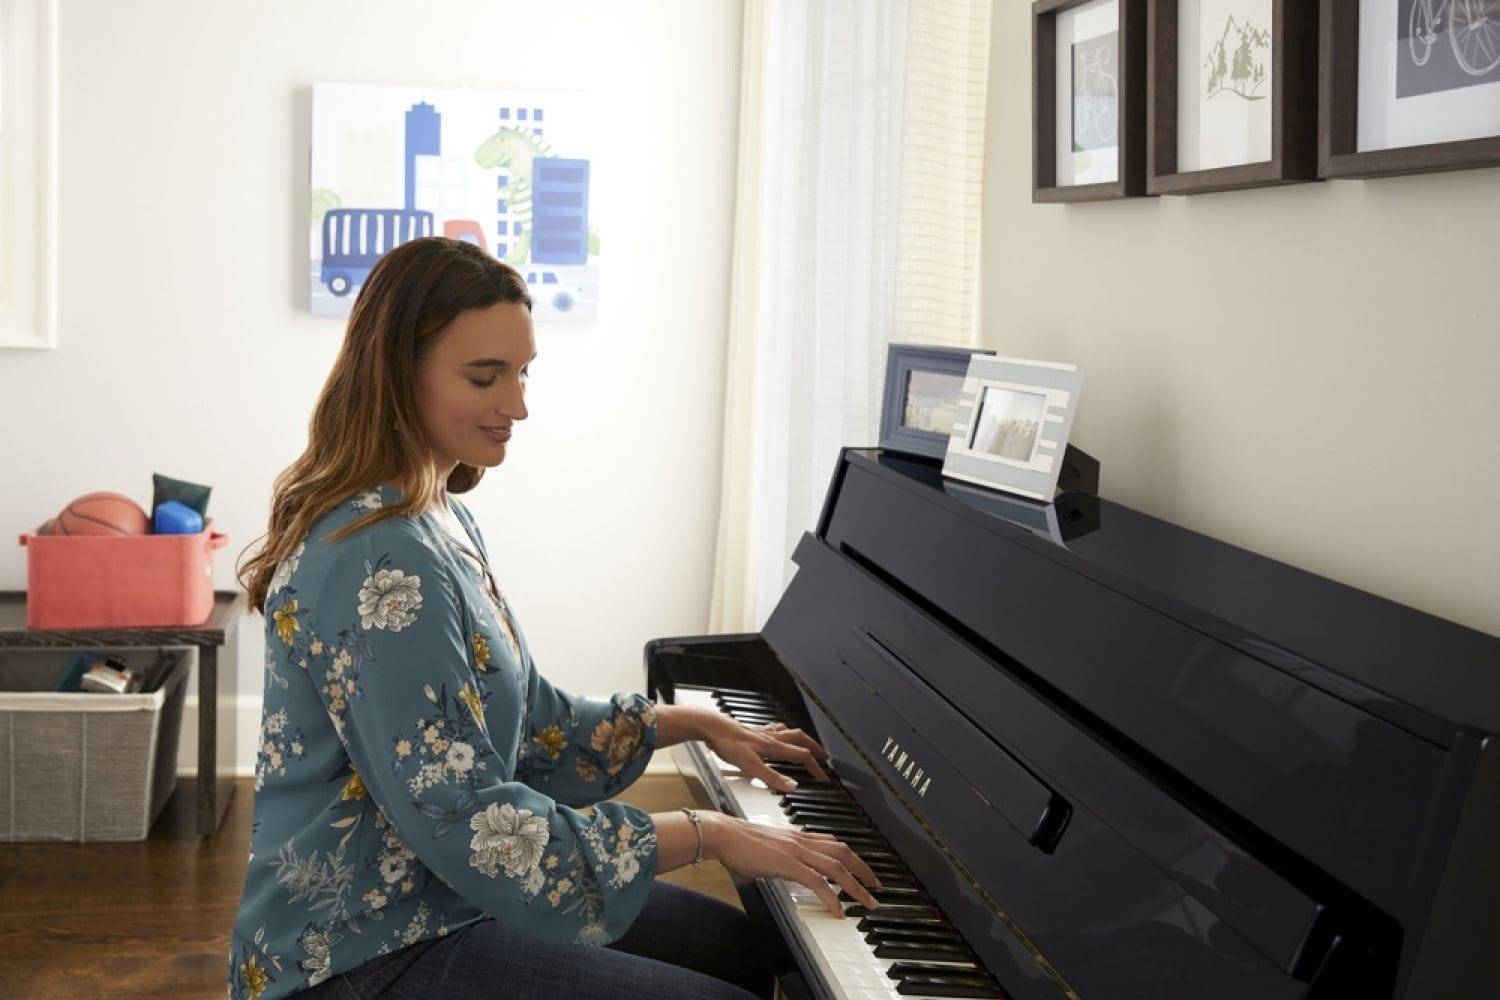 A woman approximately 30 years old with long hair and dressed casually smiling while she plays an upright piano with a lower profile back in what appears to be a kids' playroom in a home. There are kids drawings and toys in baskets in background and family pictures framed sitting on the back of piano.